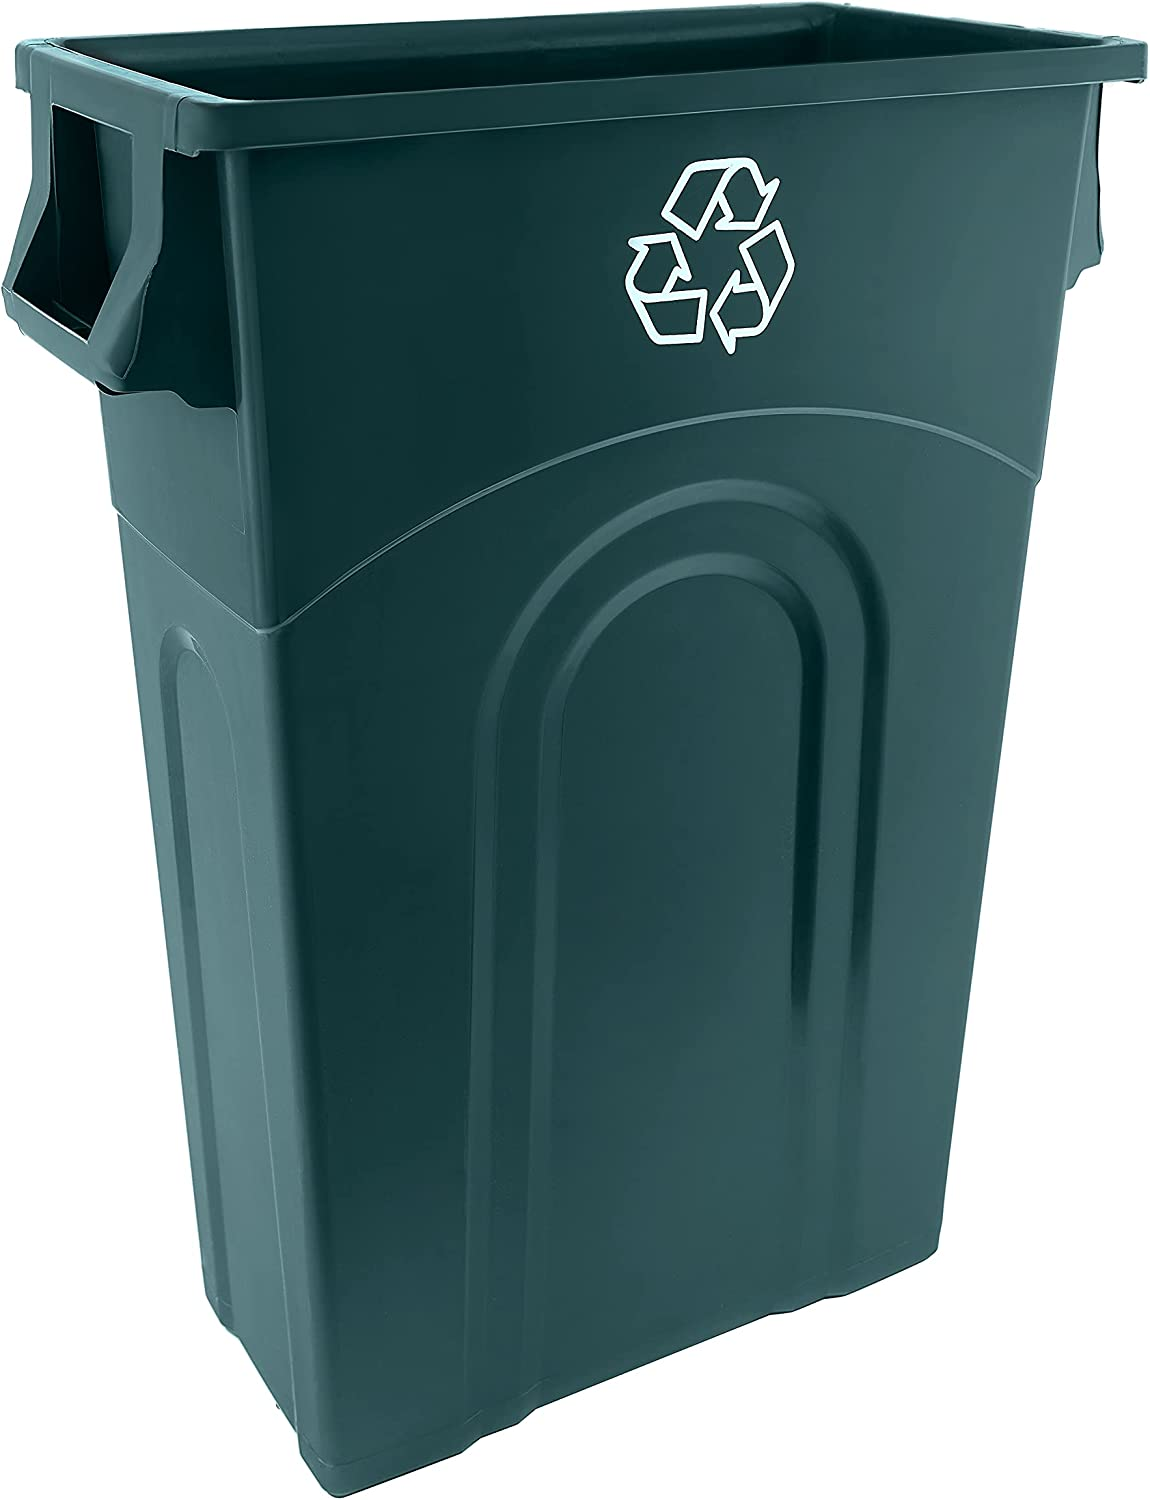 United Solutions ECOSolutions Highboy Bin 4-Pack Recycling Lowest Max 54% OFF price challenge Hun